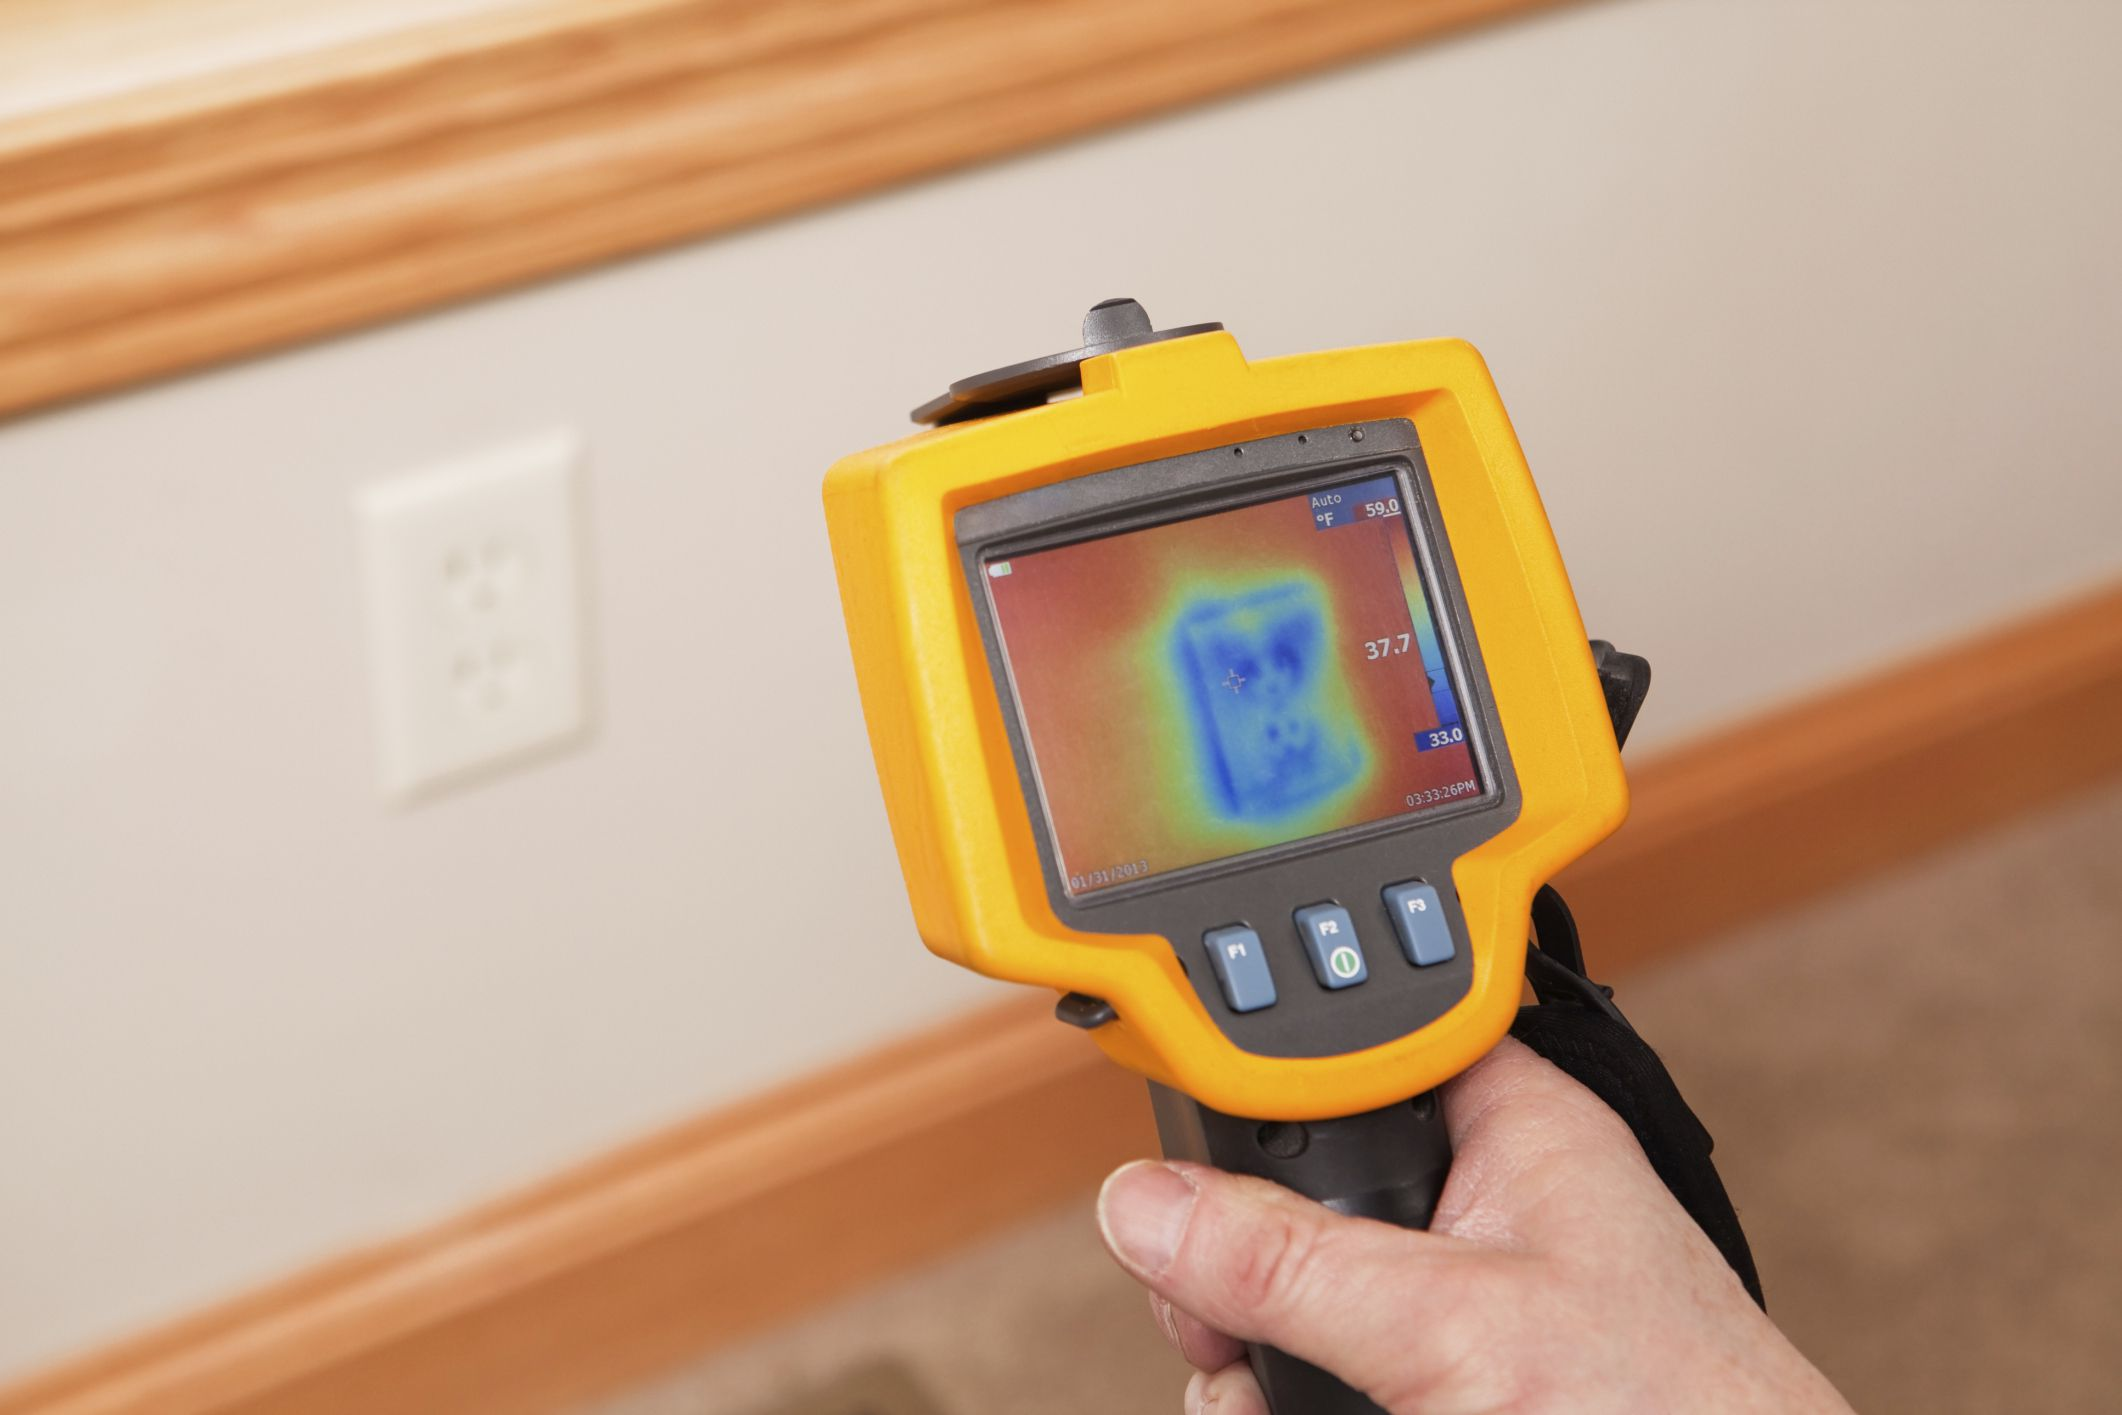 Best way to heat basement - The One Surprising Thing You Can Do To Warm Your Basement